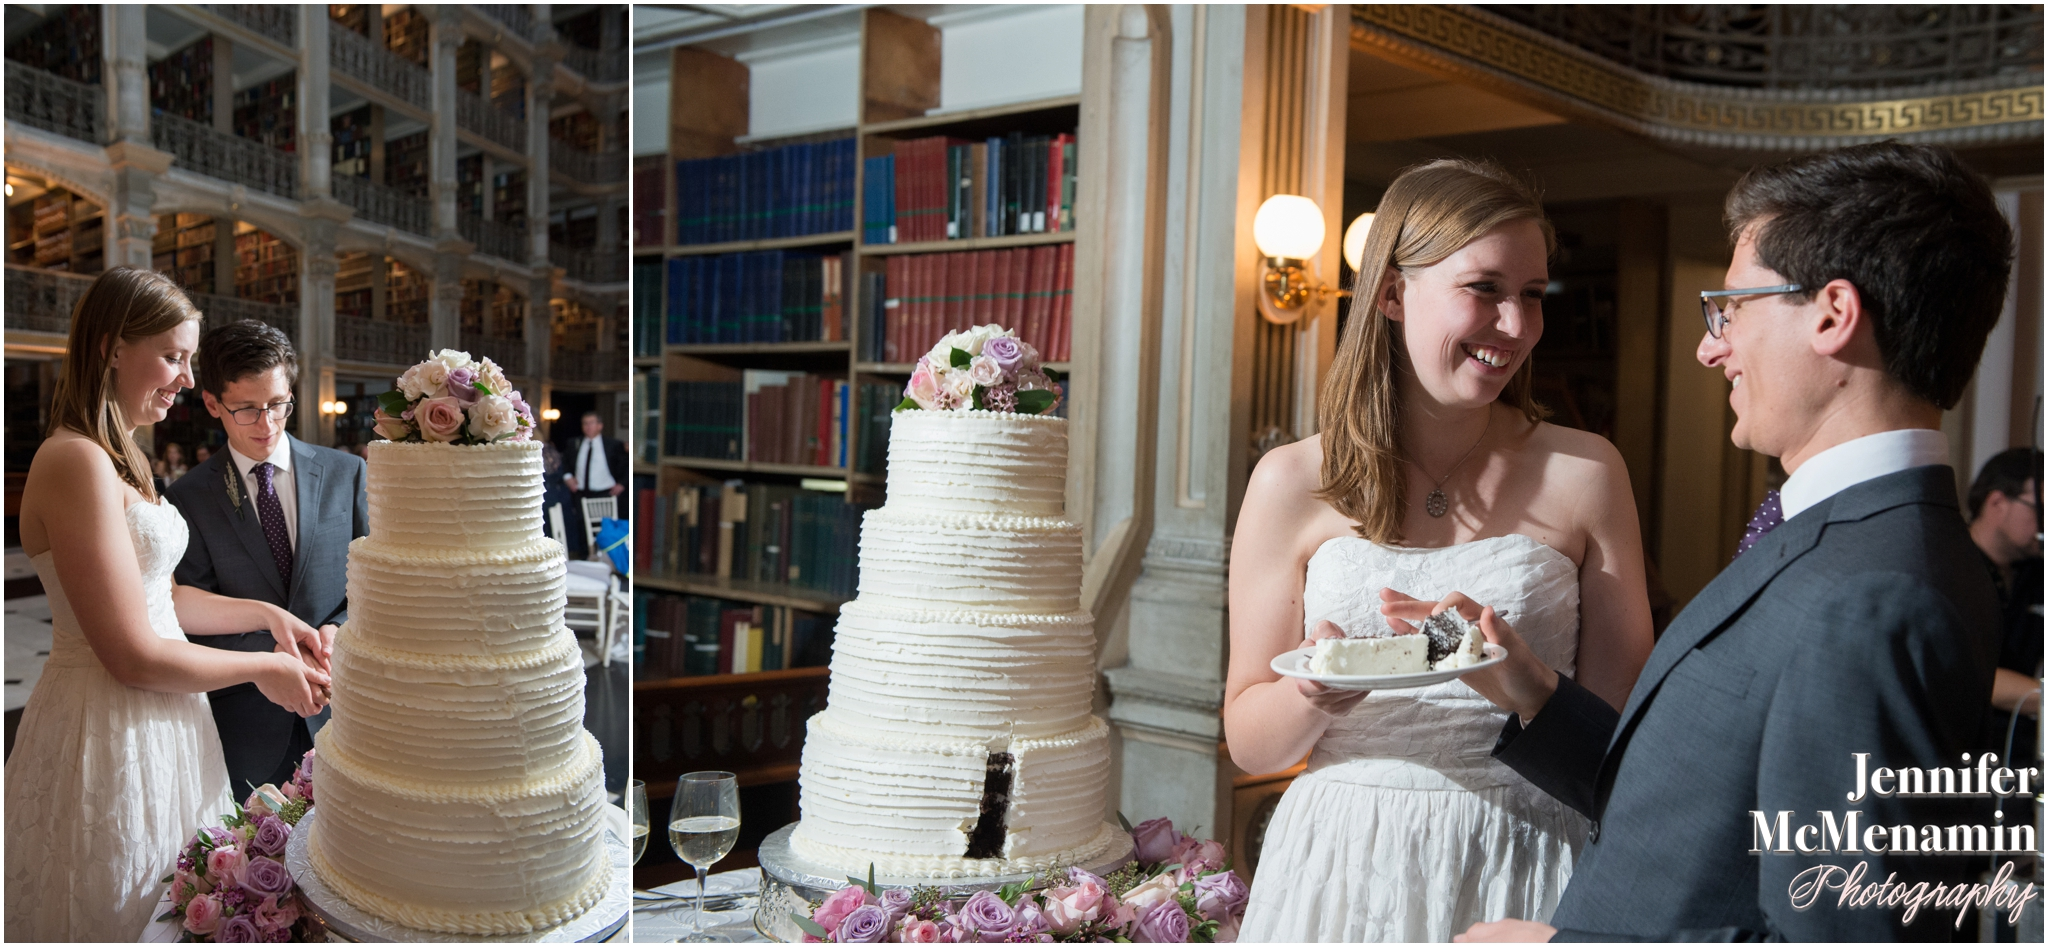 0104-WebbSlivnick_03995-0797_JenniferMcMenaminPhotography_George-Peabody-Library-wedding_Baltimore-wedding-photography_Baltimore-wedding-photographer